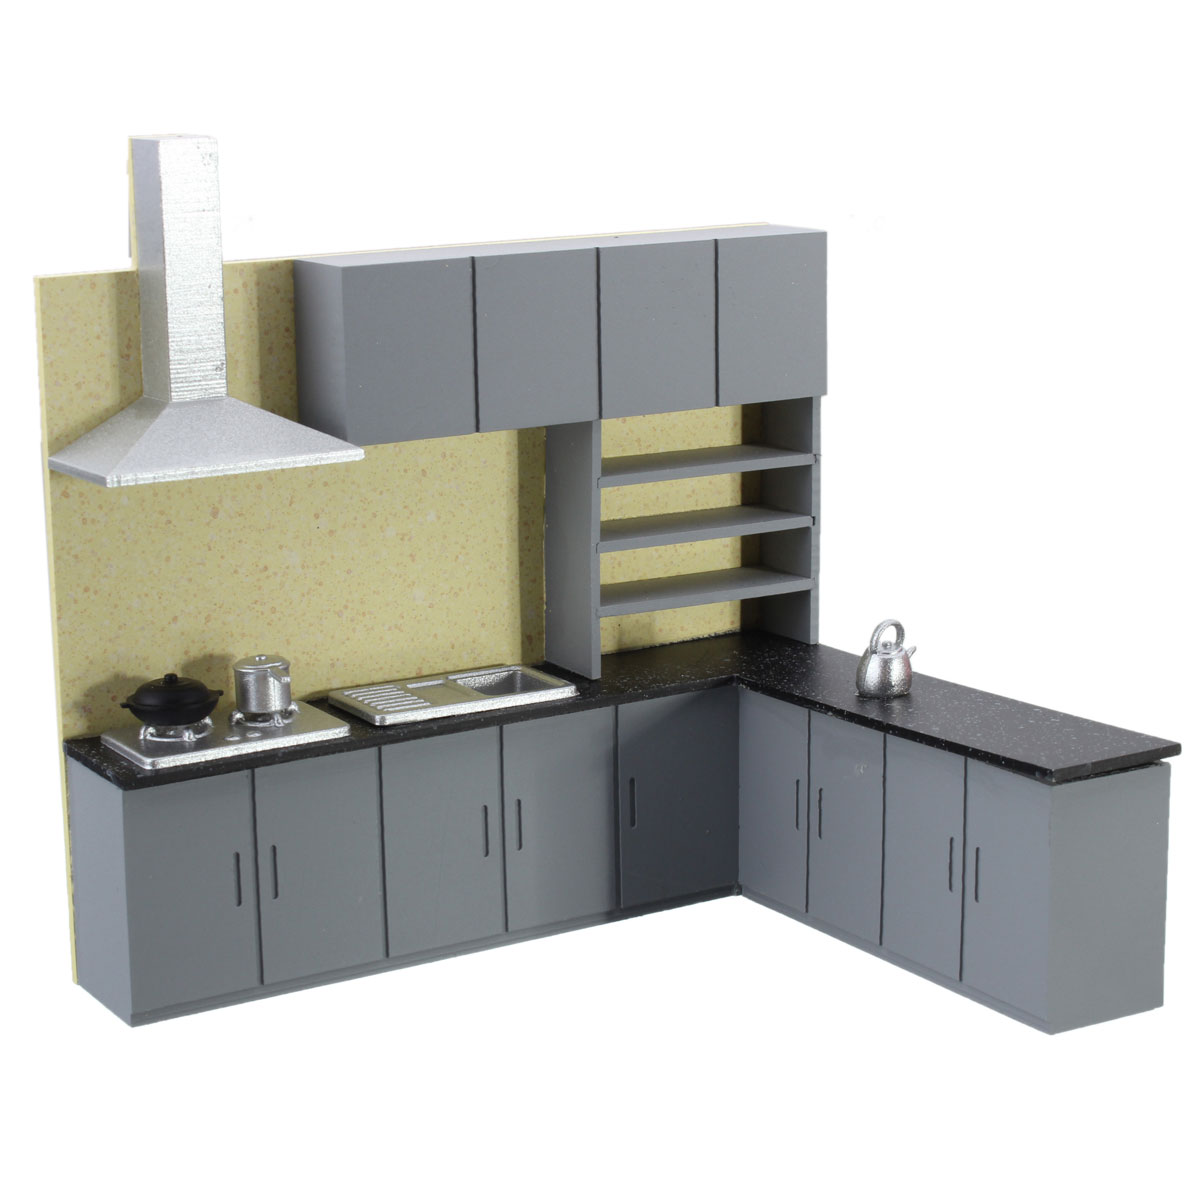 Dollhouse art modern simulation kitchen cabinet set model for Model model kitchen set